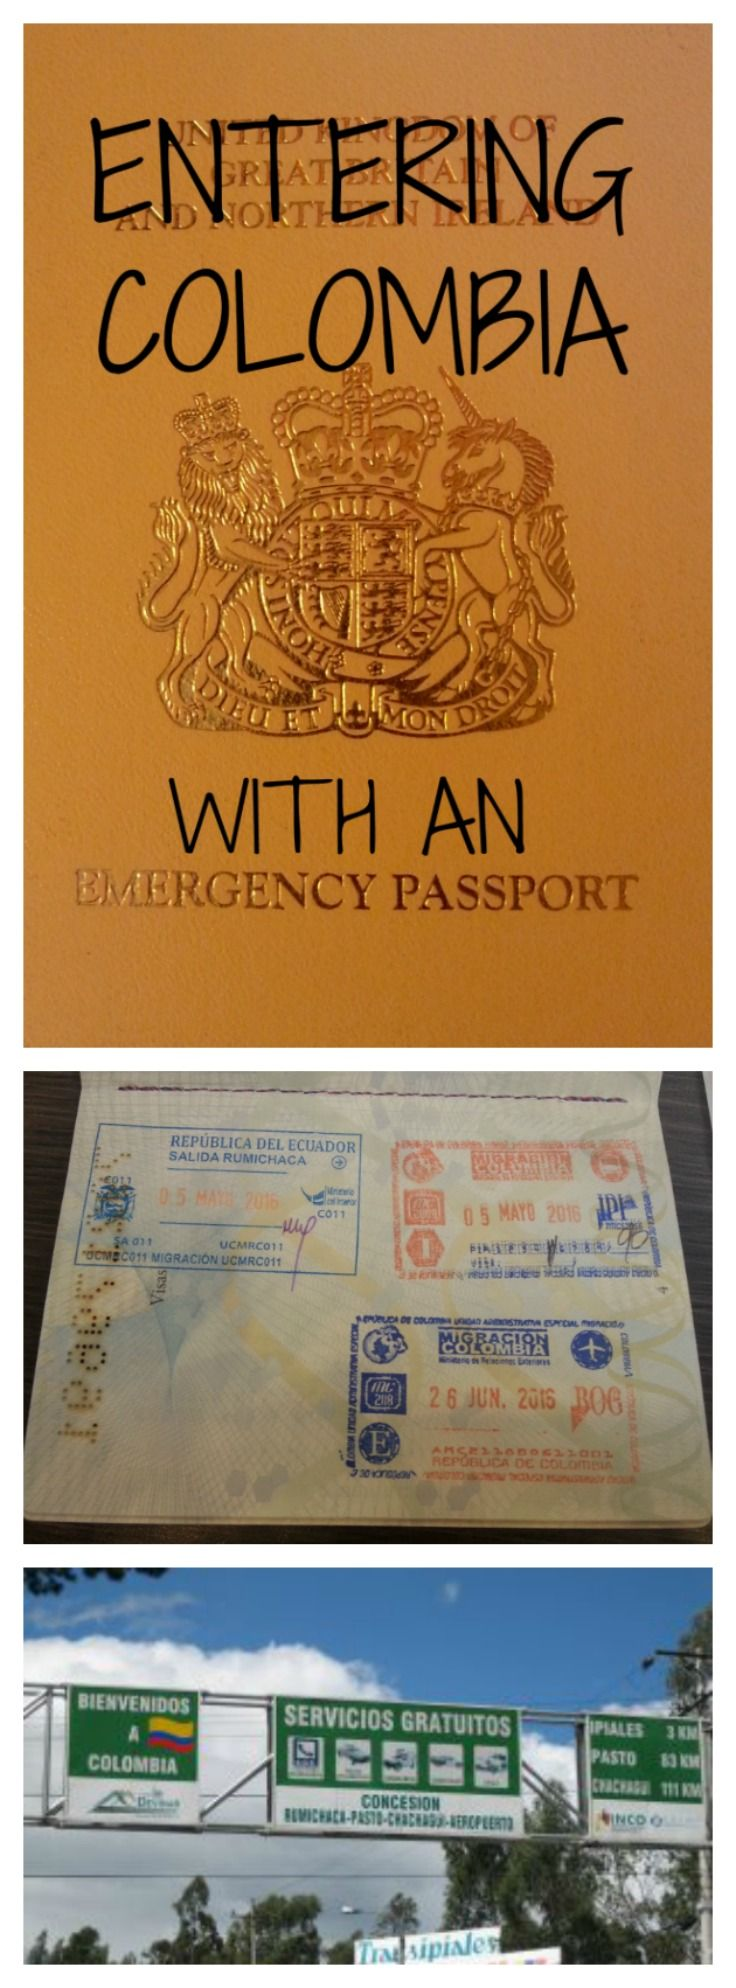 Having your passport stolen is not a nice experience - and then having to travel with an emergency passport is scary too!  Here's how I entered Colombia with an emergency passport